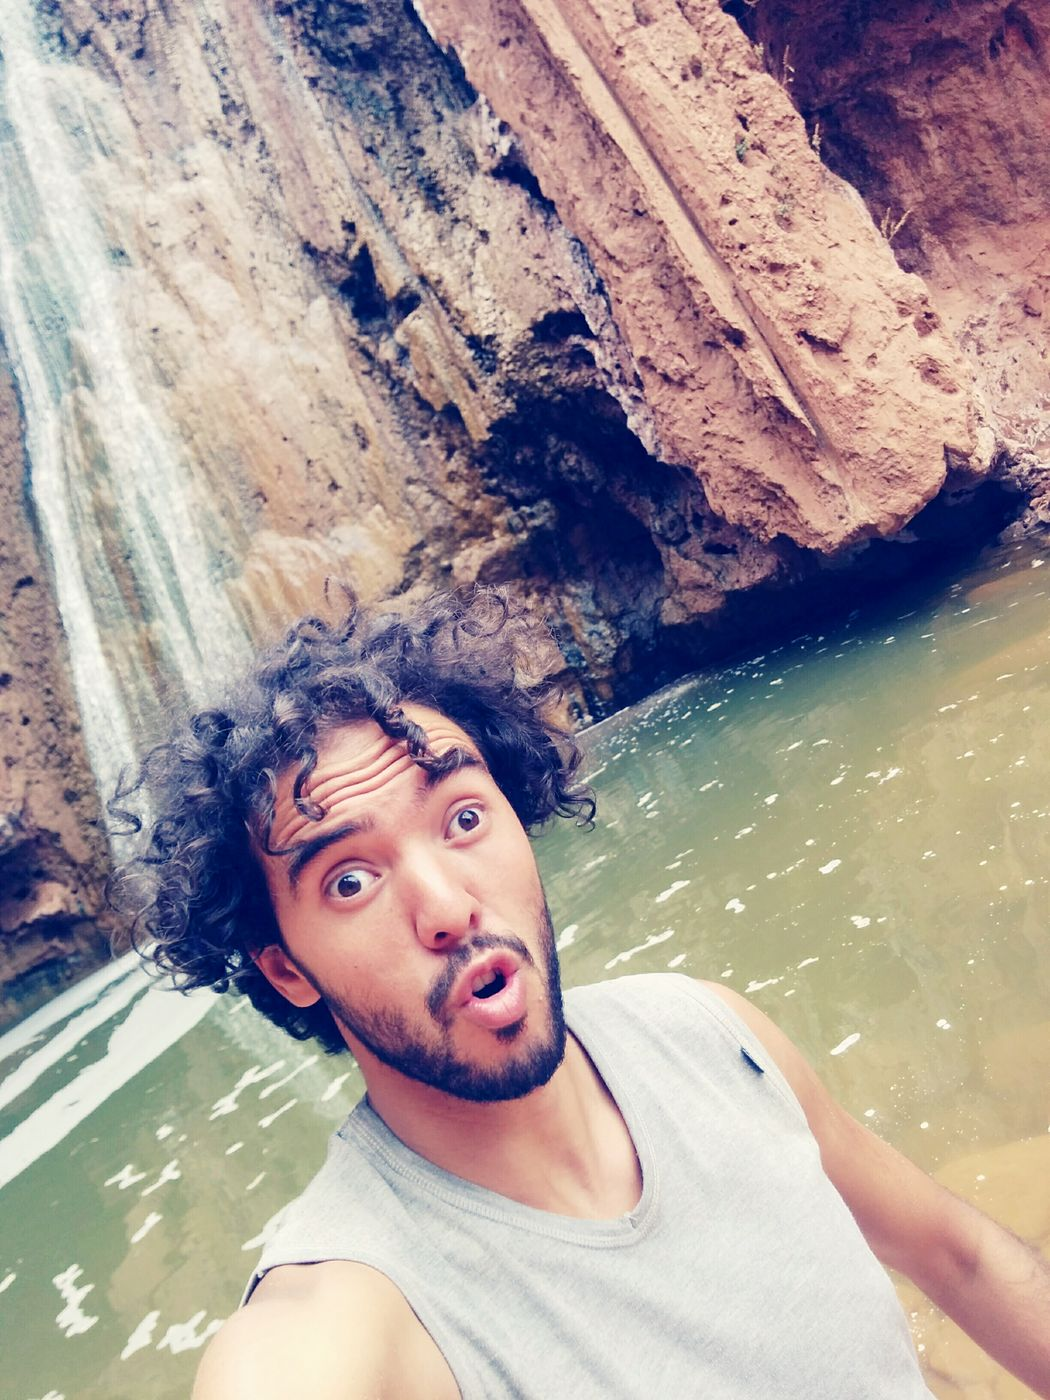 Water Swimming مرحبا اخواني المجانين Relaxation Trip Photo Cha3kouk Crazy Moments Enjoying Life MoroccoTrip Traveling Travel Photography Trips Enjoying The View Smile❤ Nature Morocco Hello World Lifestyles No People Trippy Tranquility The Magic Mission Water Headshot Leisure Activity